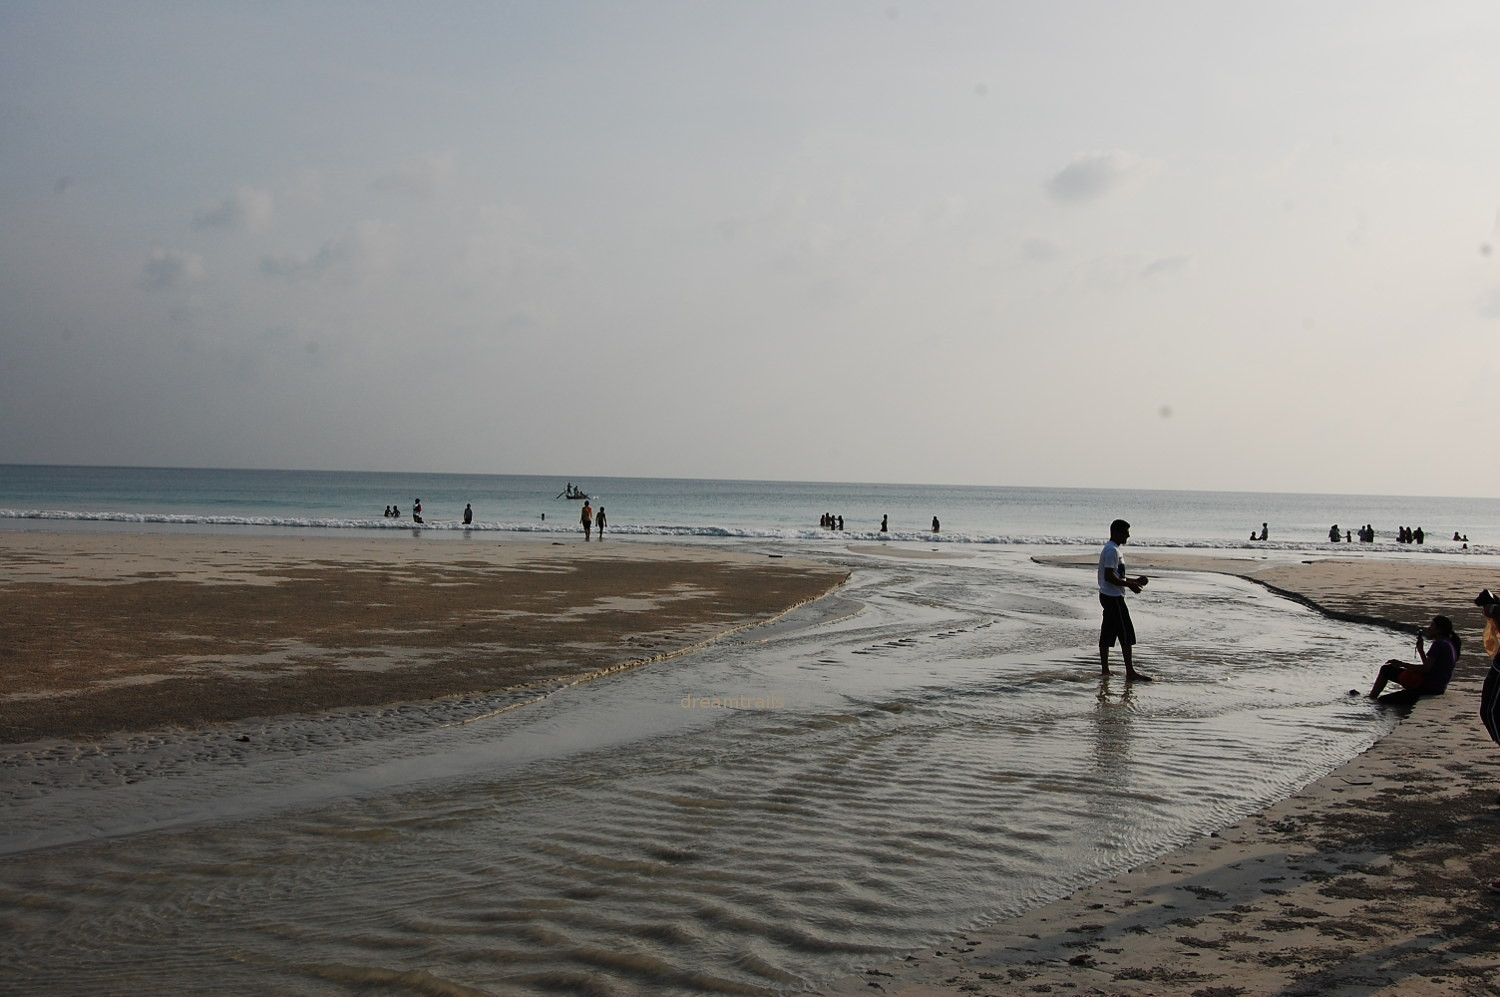 Radhanagar Beach, Havelock, Andaman & Nicobar Islands